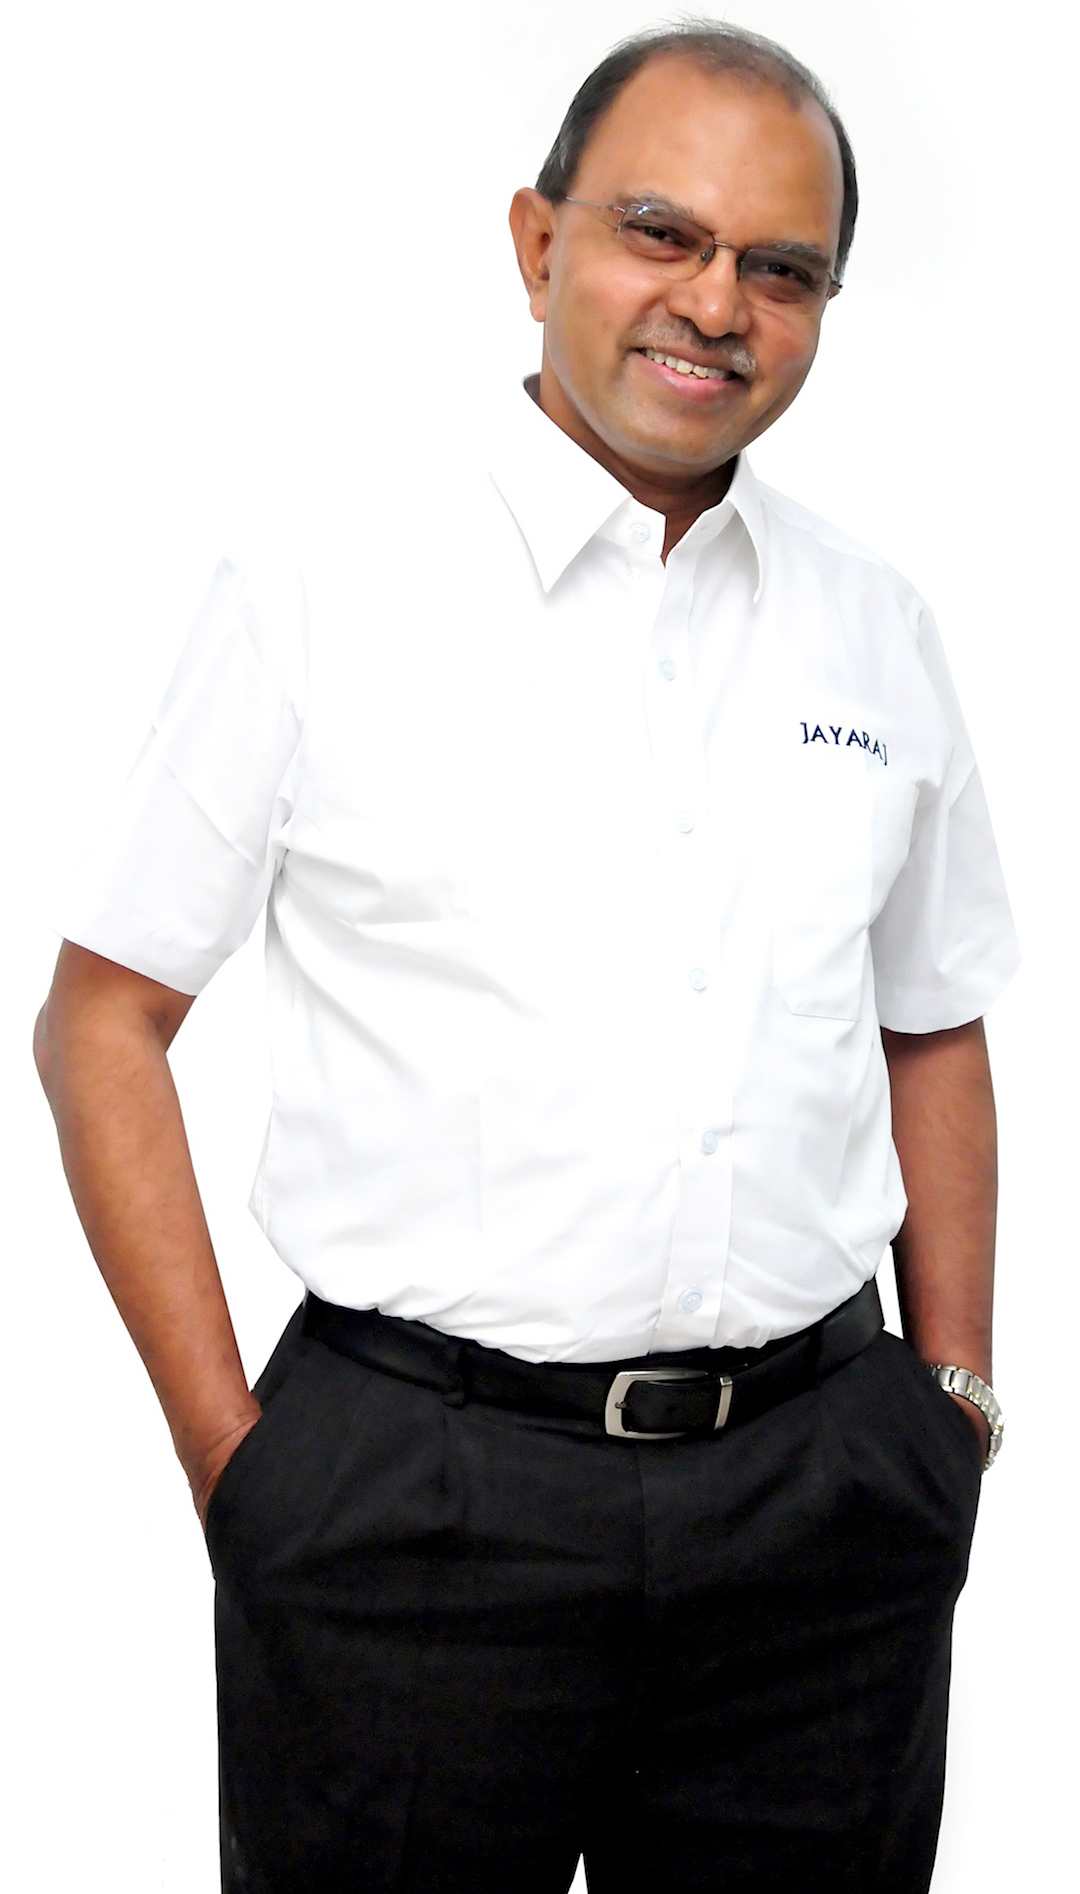 Mr Jeyasuresh Jayaraj